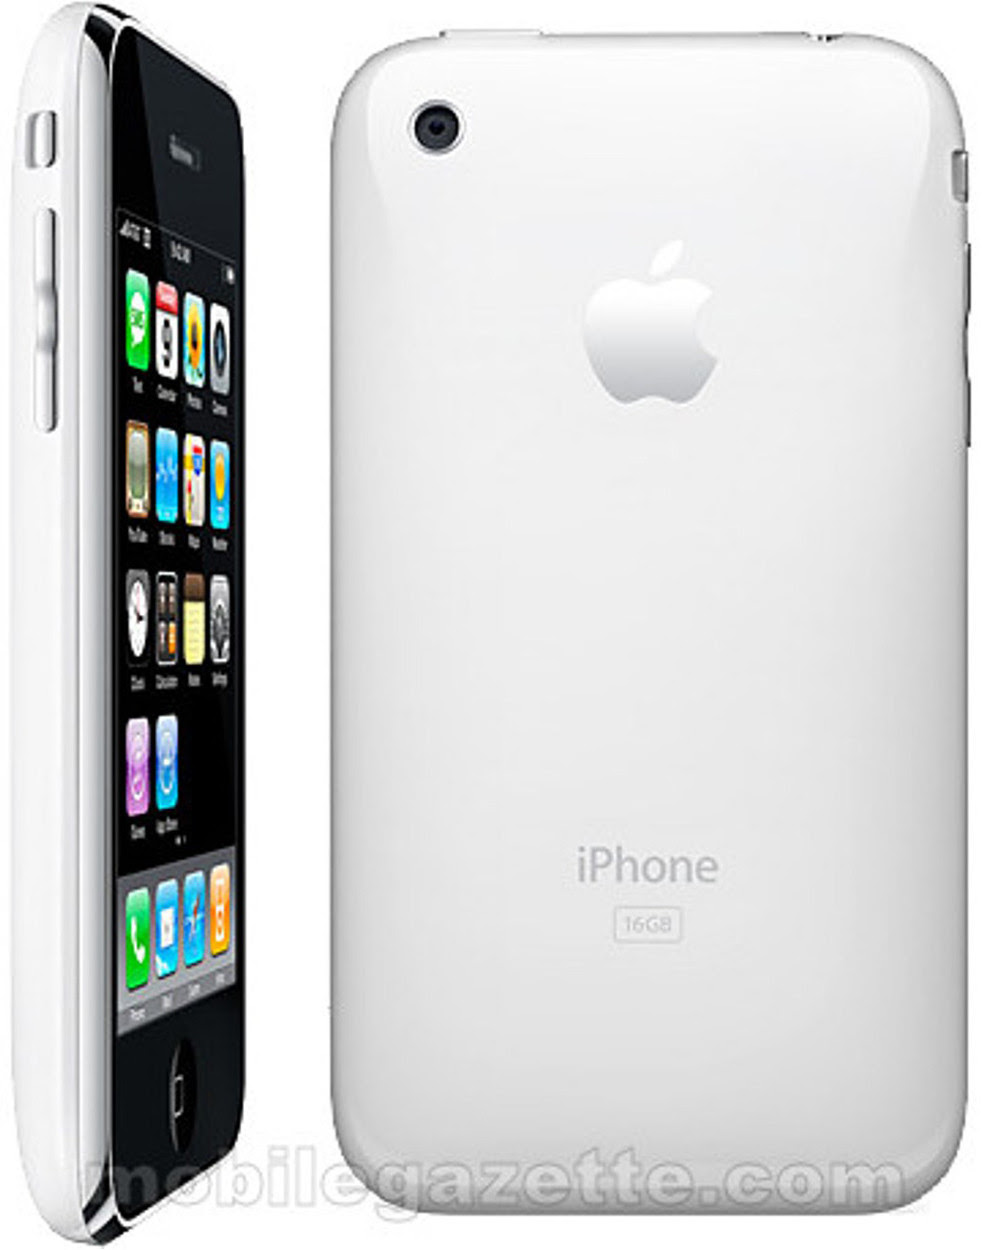 Apple iPhone 3GS 8GB - Specs and Price - Phonegg